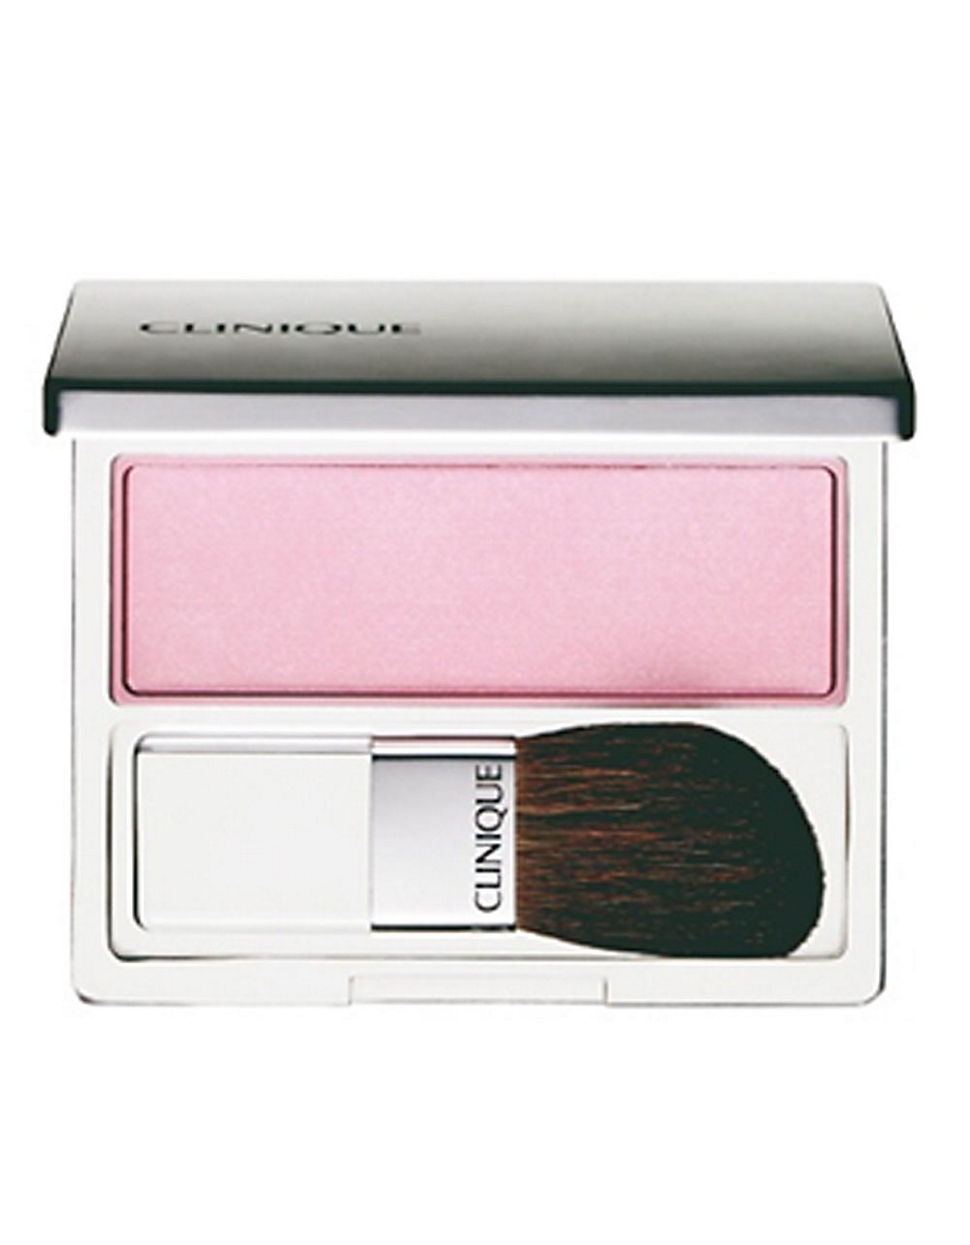 CLINIQUE Blushing Blush Powder Blush breathless berry